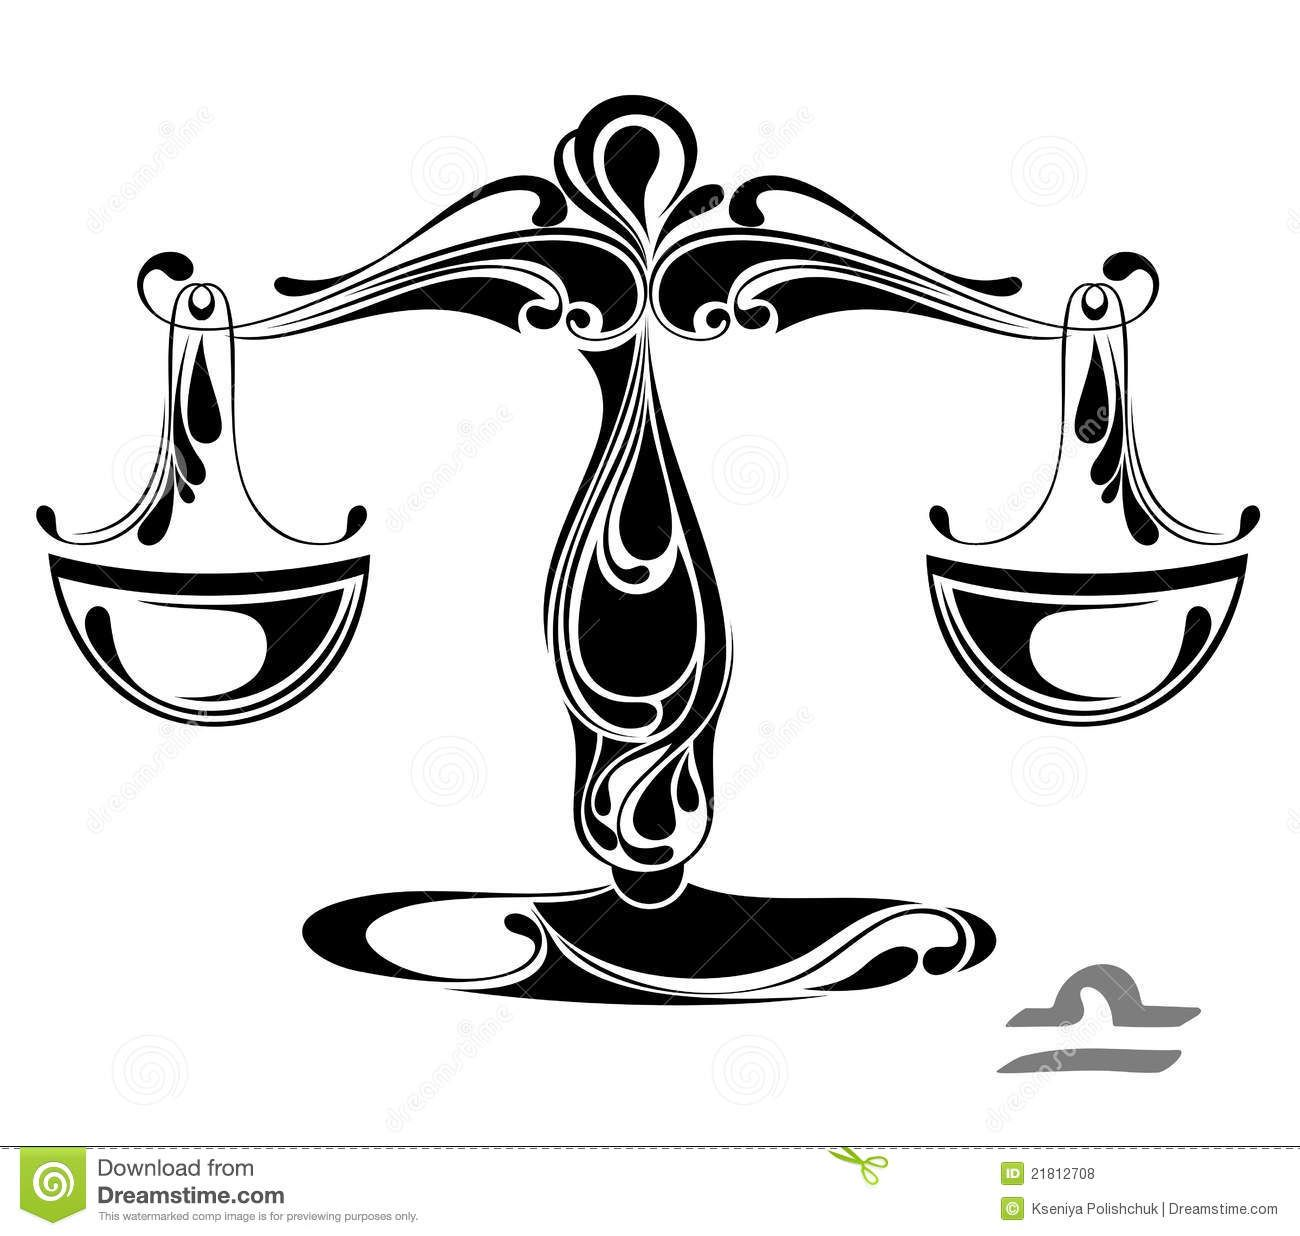 Sign tattoo designs - Libra Zodiac Vector Sign Tattoo Design Download From Over 56 Million High Quality Stock